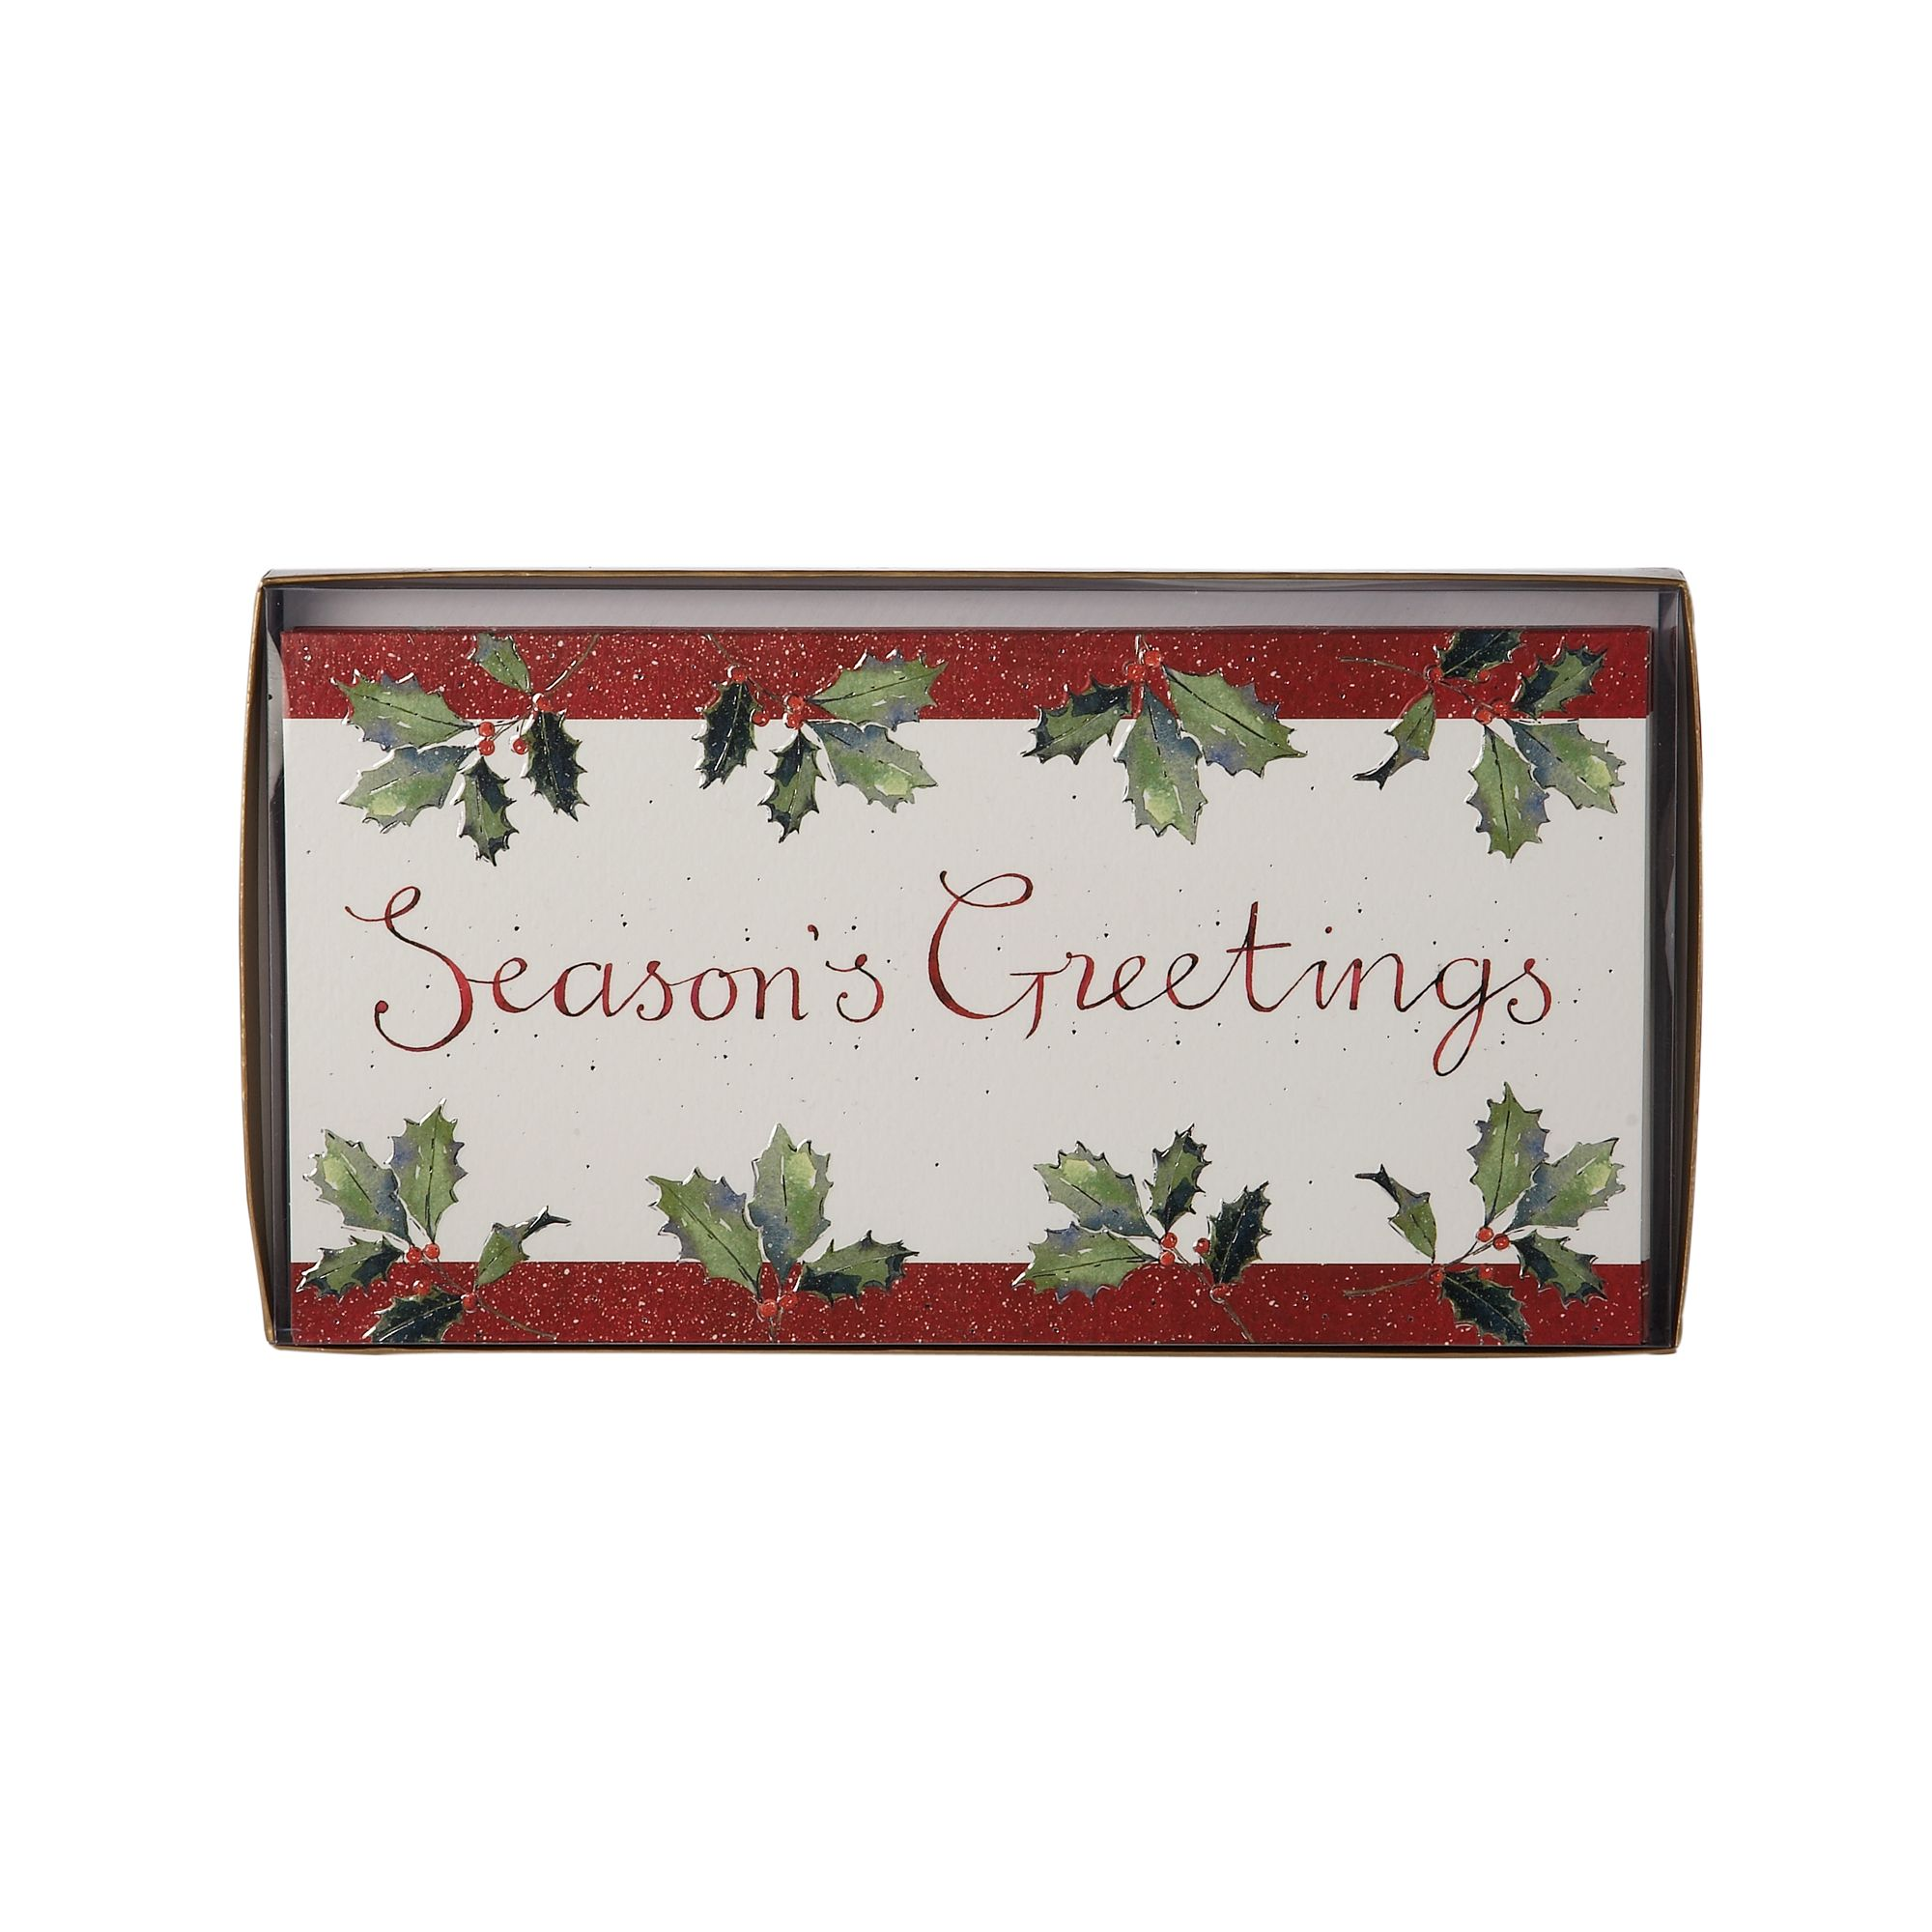 Ling Holly seasons greeting Christmas cards